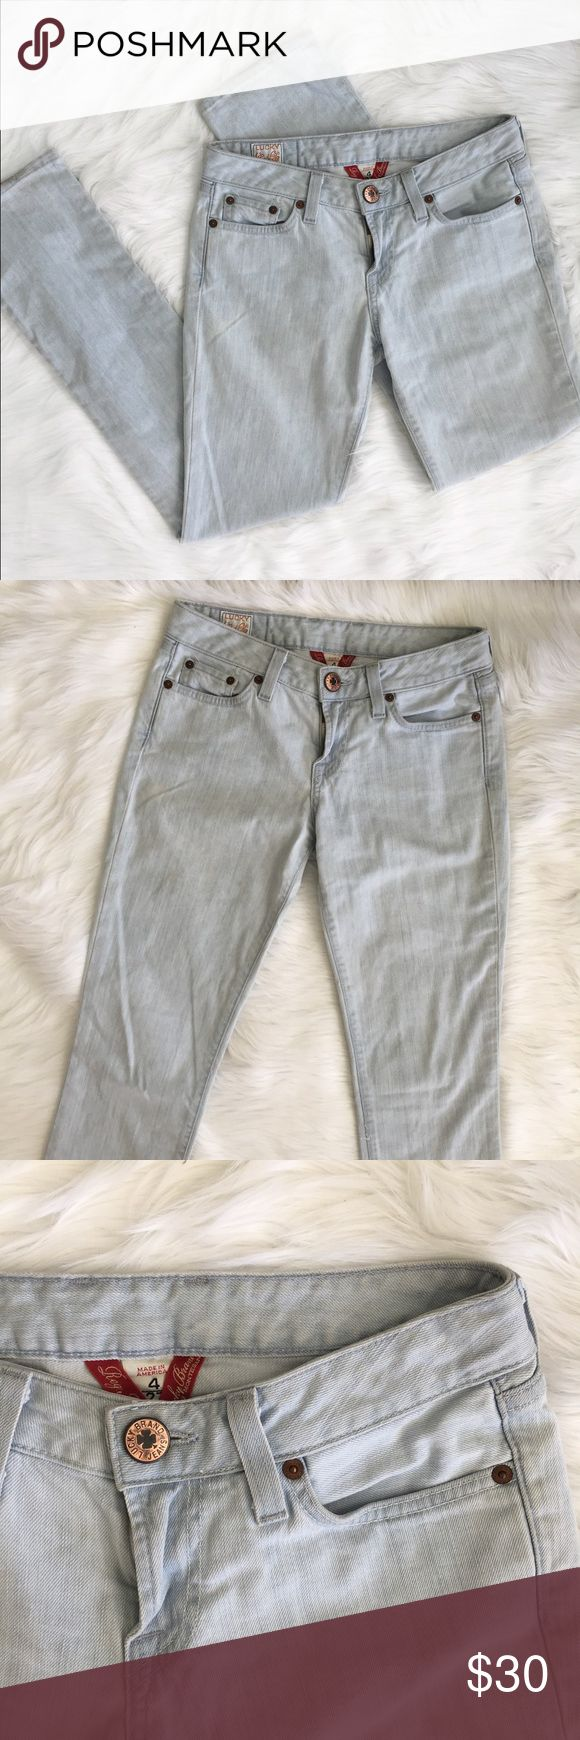 Lucky Brand Jeans Light Wash Regular Inseam 4/27 Lucky Brand Jeans Regular inseam by Gene Montesano. Light wash denim. Made in America. There is one small spot on the thigh, pictured in the last photo. The ends are a little dirty. Otherwise in very good condition. There is no style but I believe they are straight leg, defiantly not boot cut. The inseam is 30 inches. The waist is about 15 inches. They are 38.5 inches long.    ⭐️10% off 2+ bundle  ⭐️Size 4/27 ⭐️Smoke free home Lucky Brand…